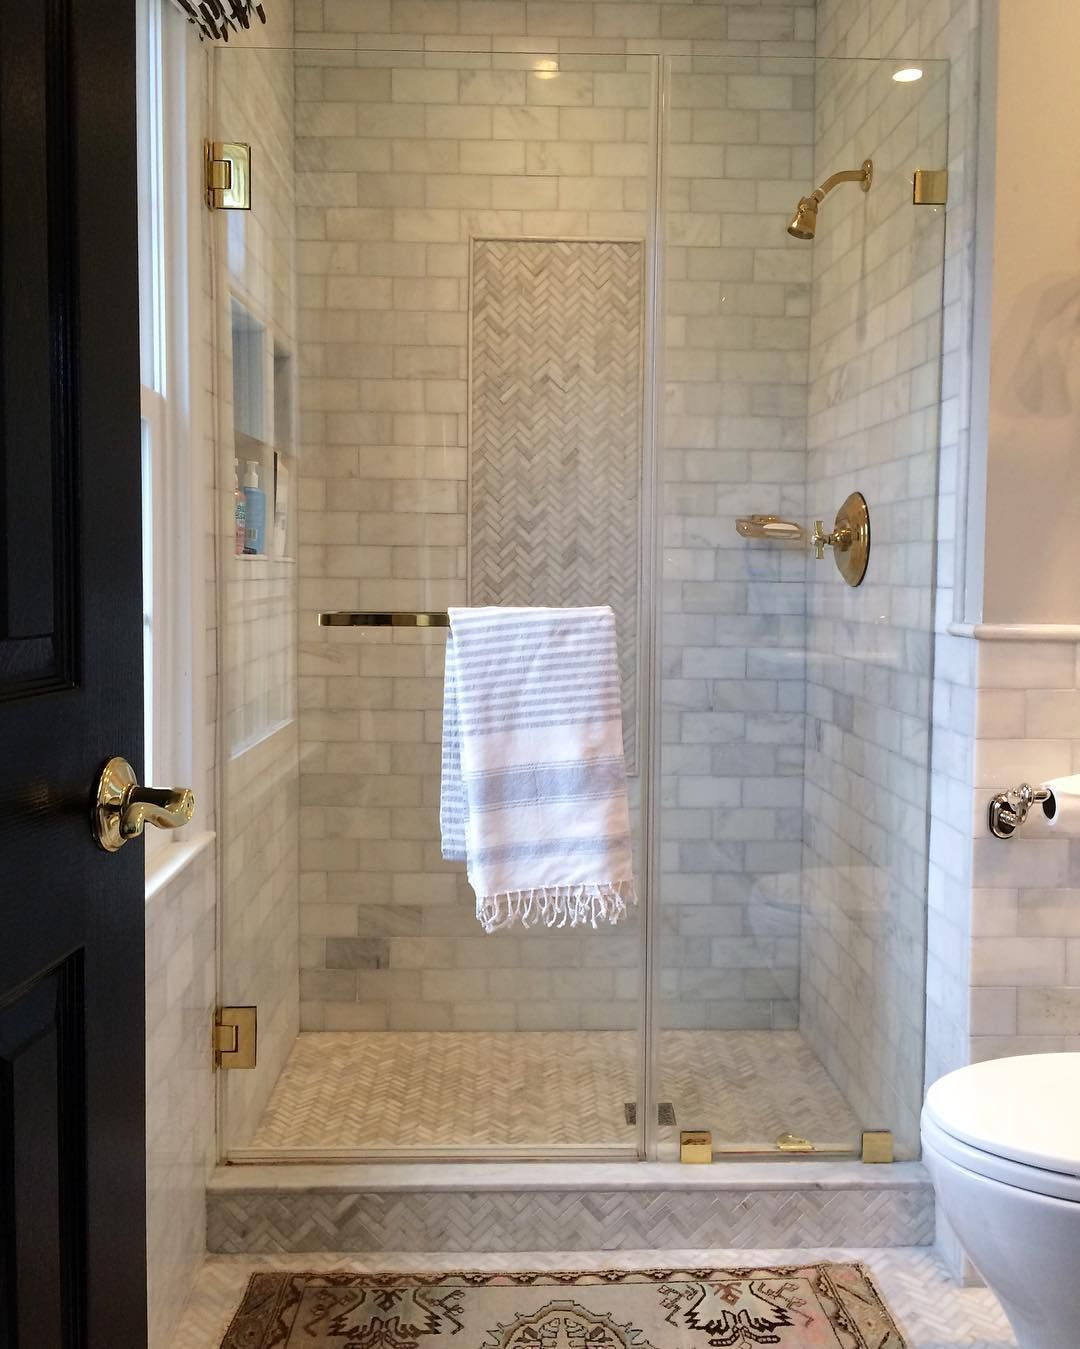 Planning the finishes in a client's master bath, and